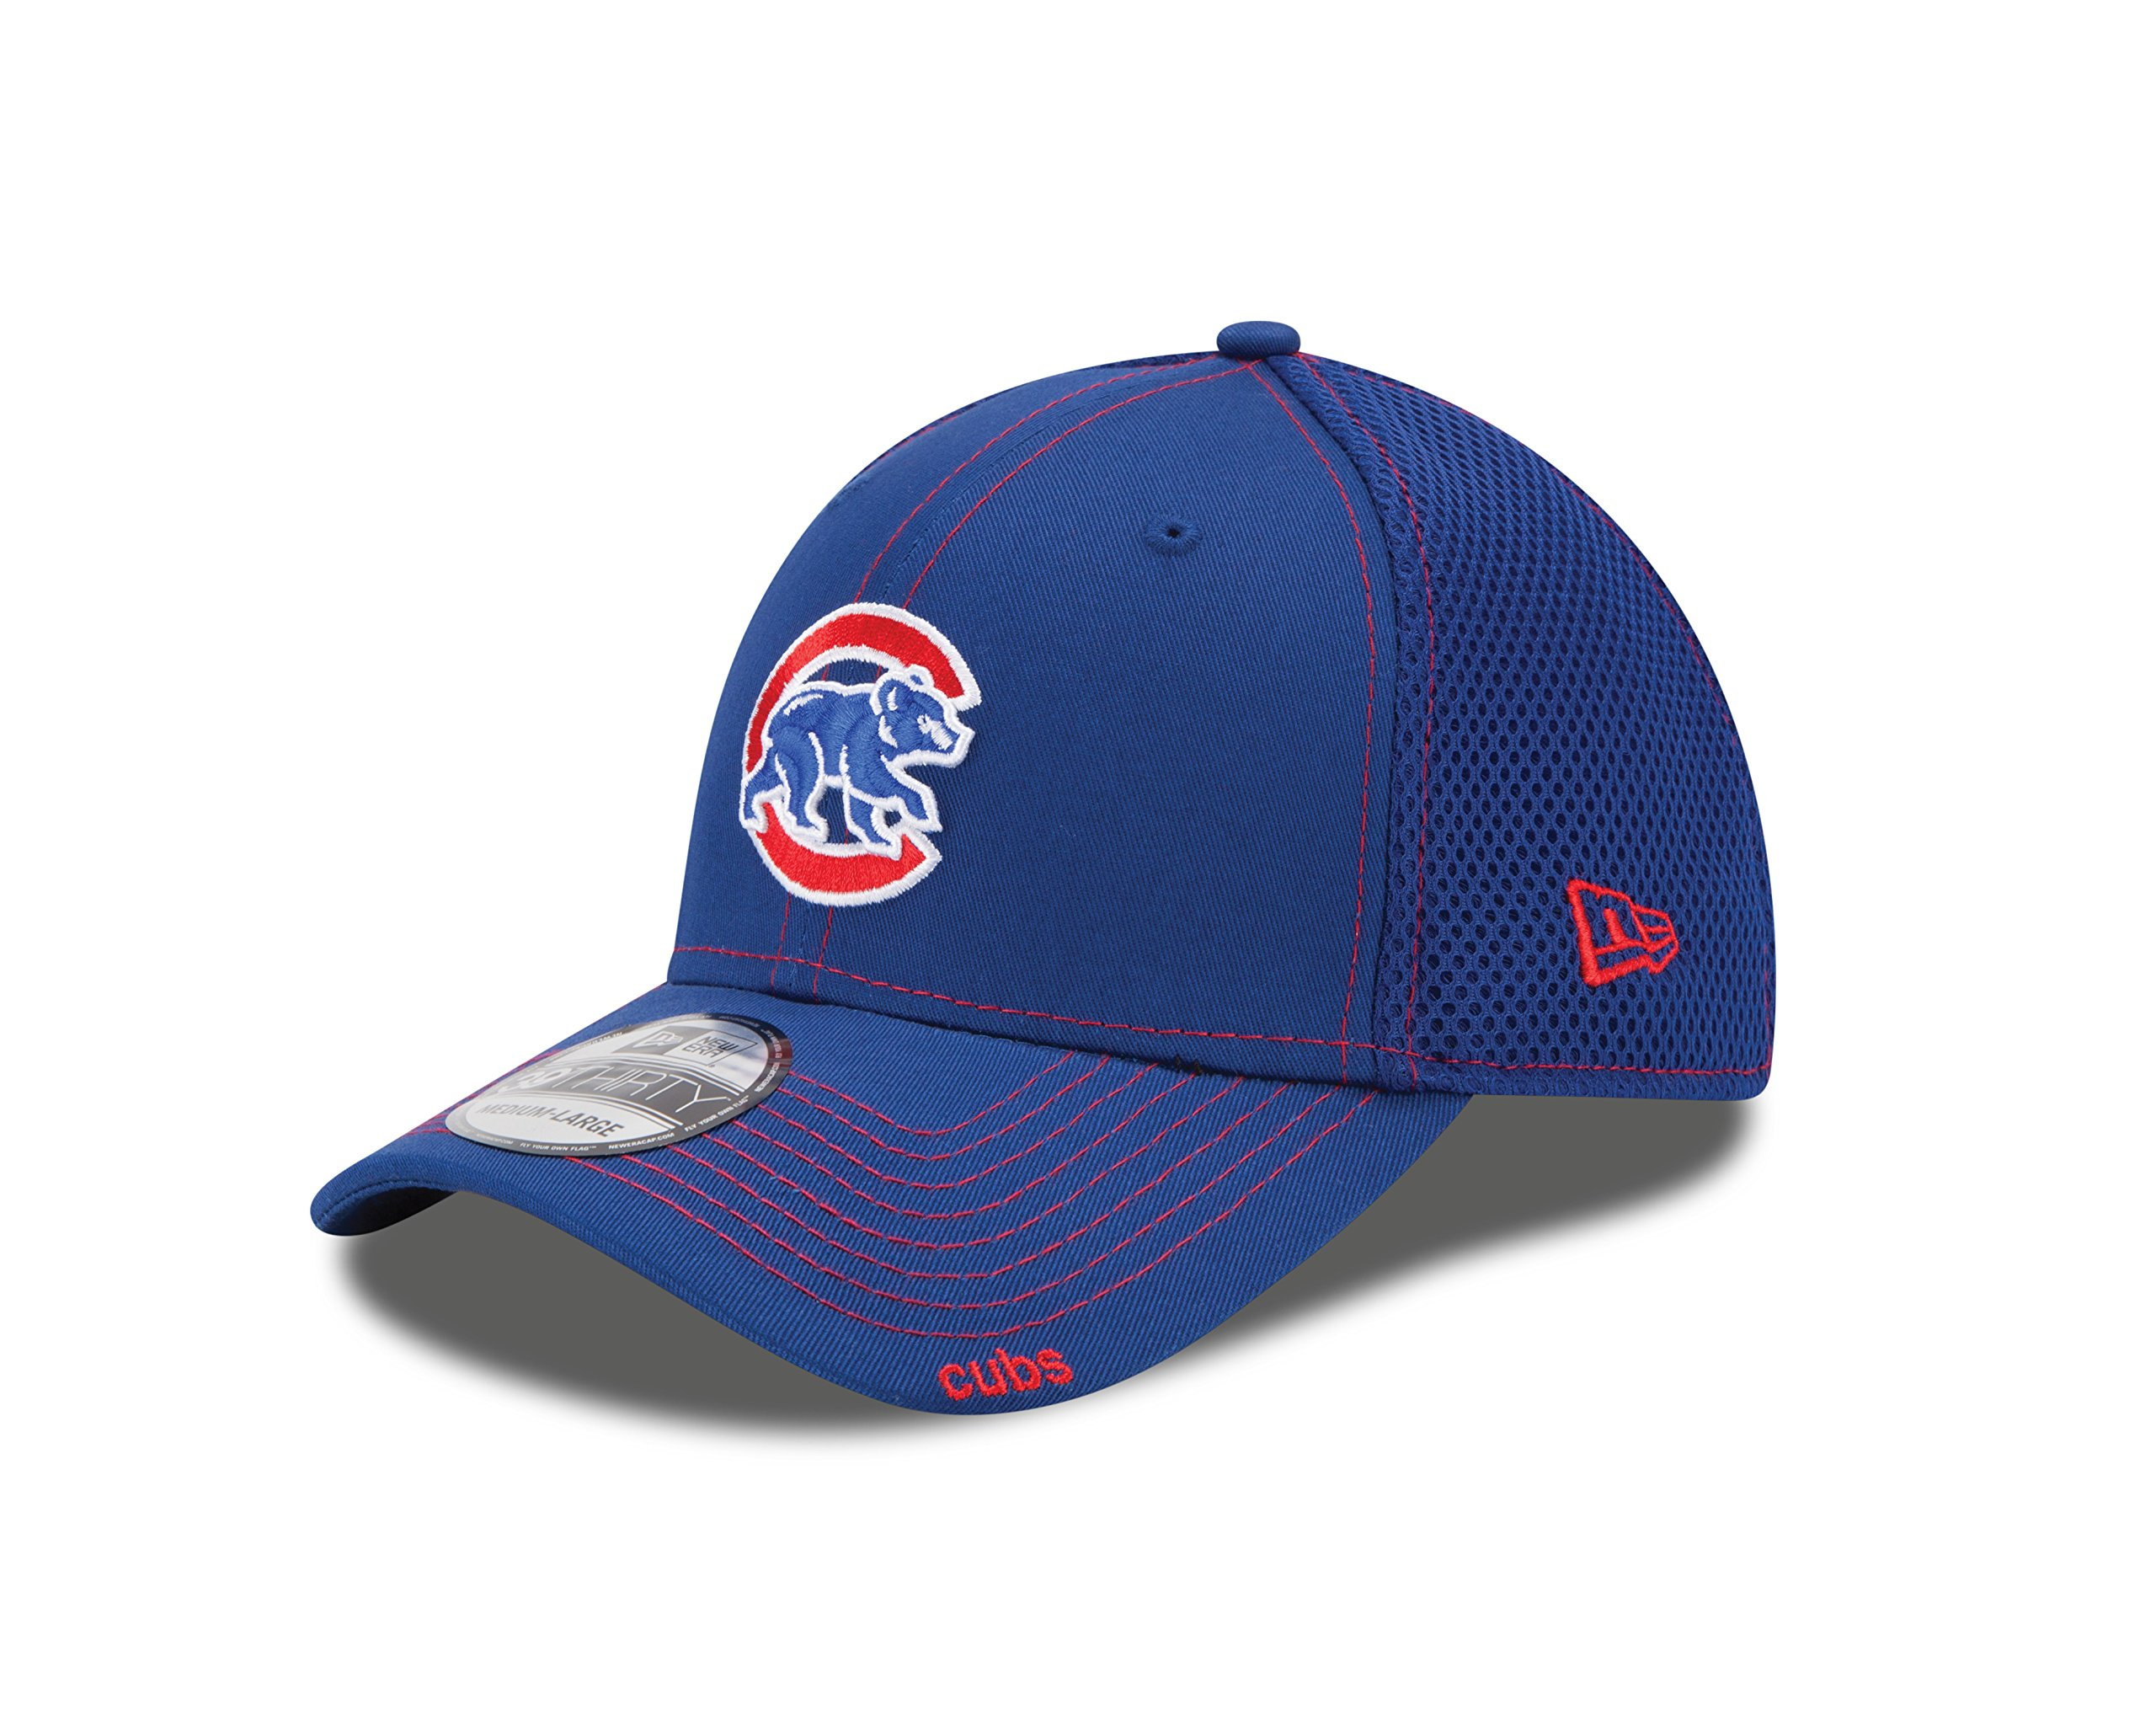 MLB Chicago Cubs Alternate 2014 NEO 39Thirty Stretch Fit Cap, Blue, Large/X-Large by New Era